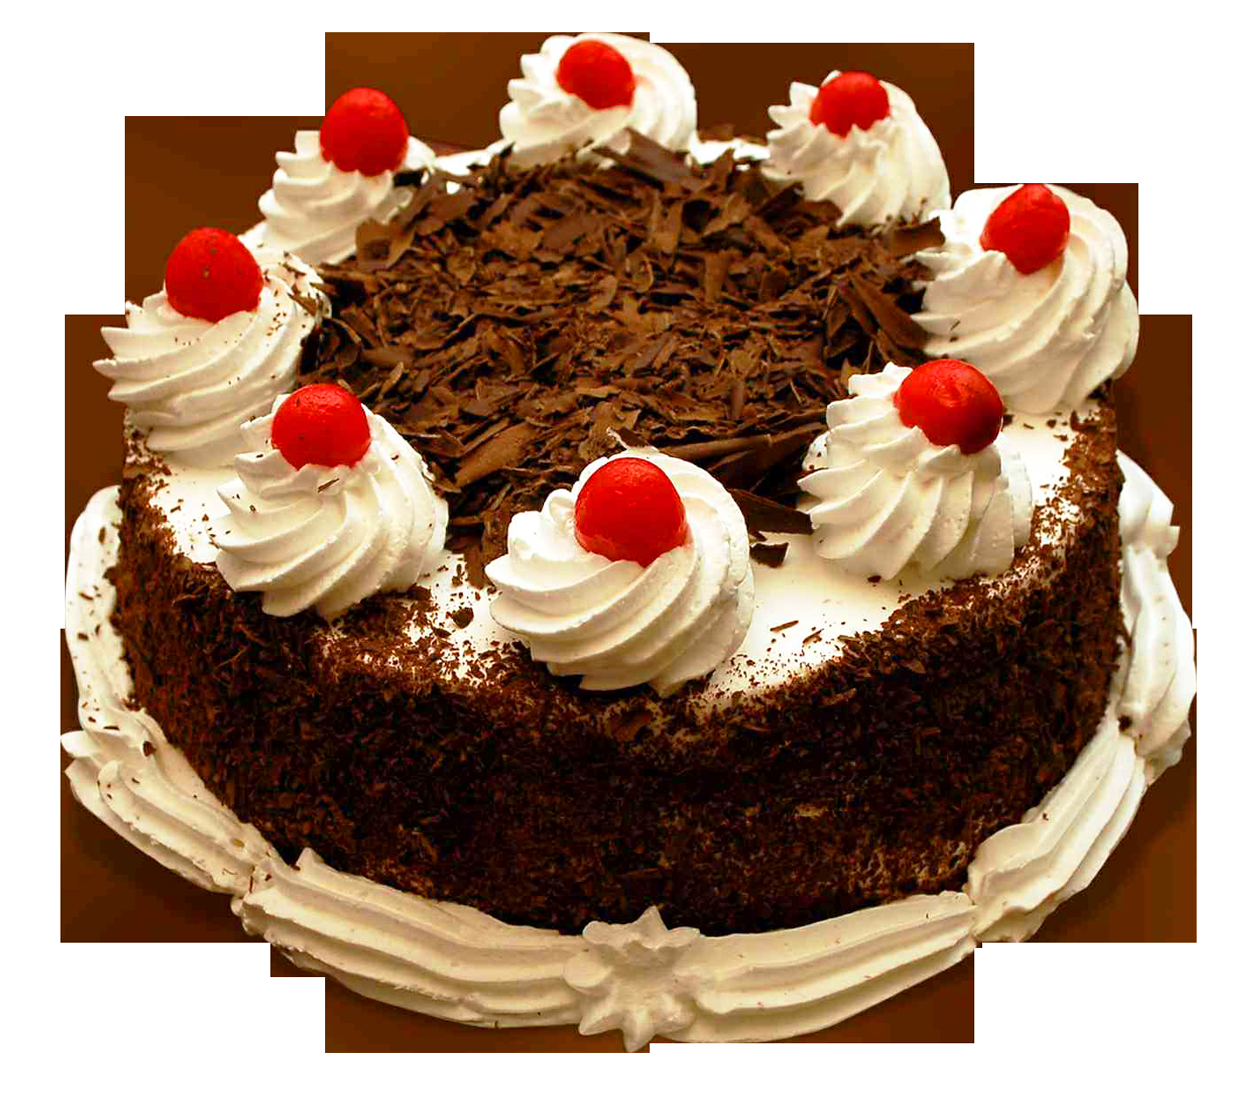 Birthday Cake Picture Free Download Png Image For